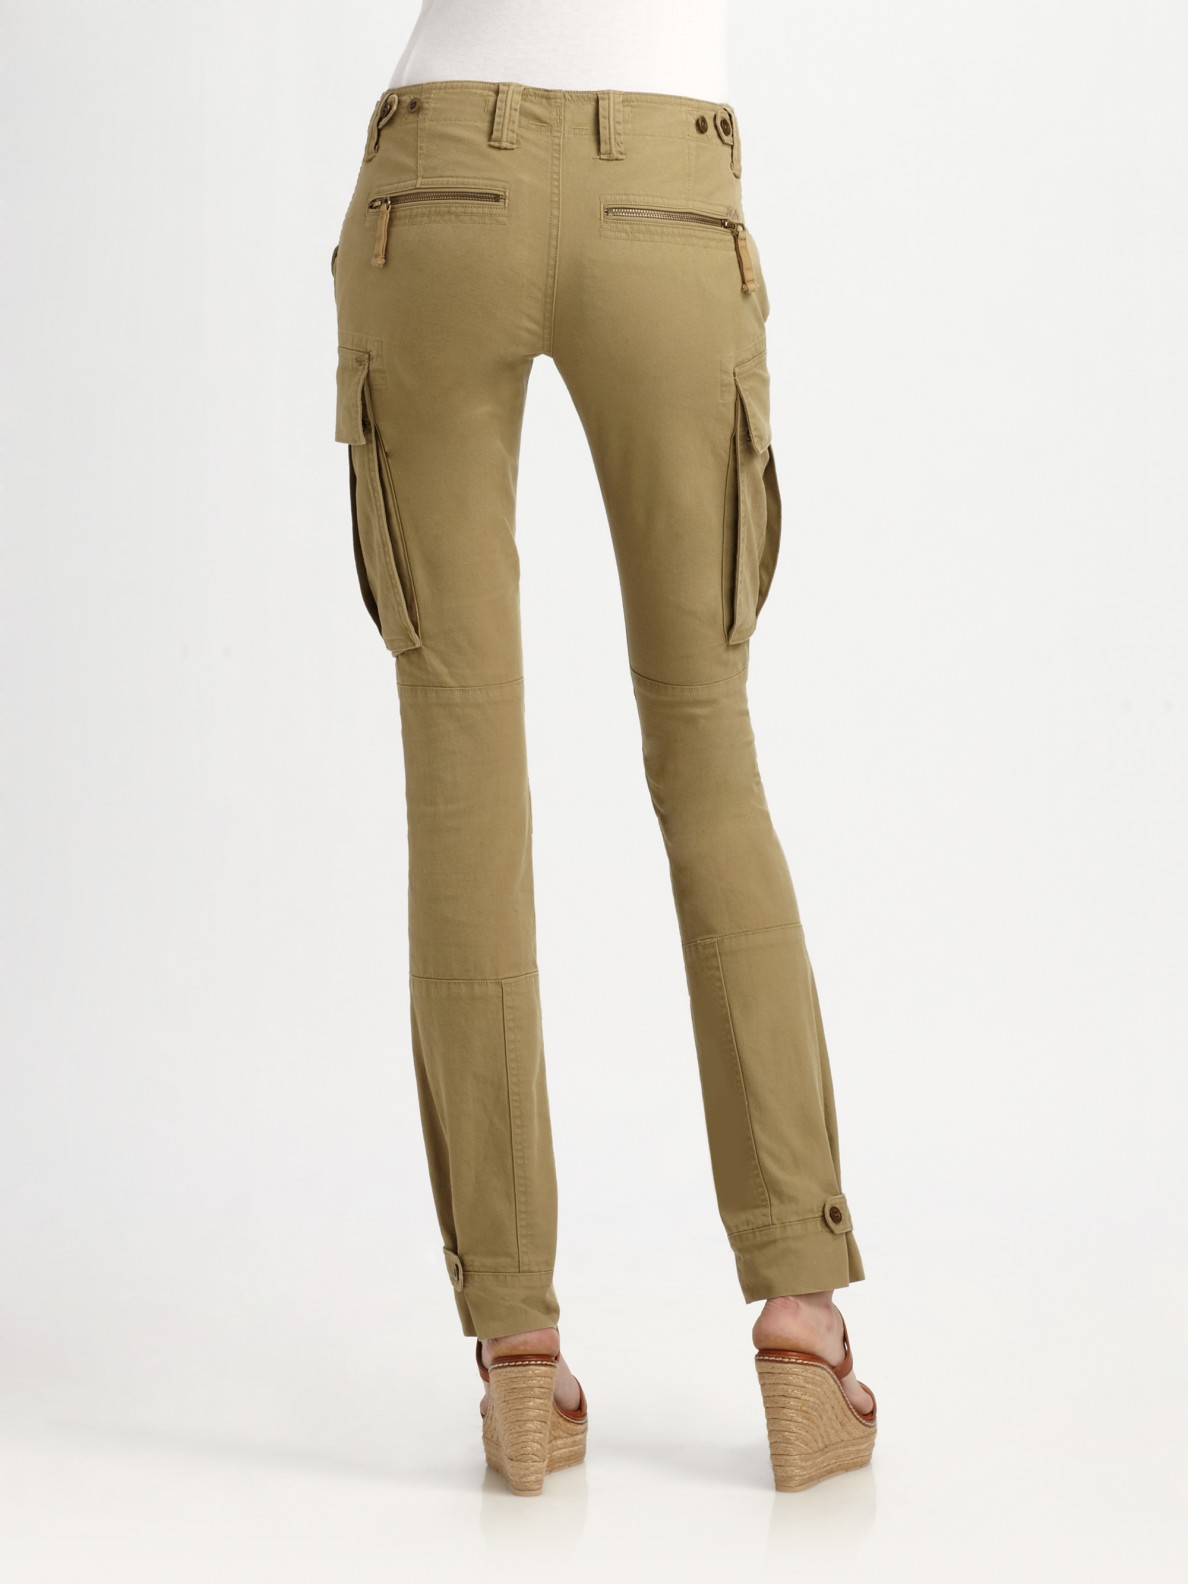 Elegant Polo Ralph Lauren Twill Cargo Skinny Pants In Green  Lyst